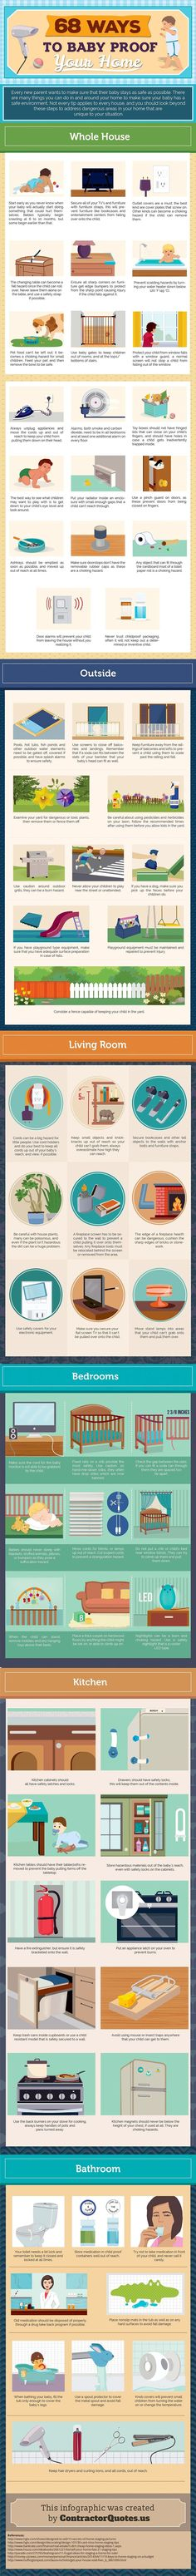 How to Baby-Proof Your Home; Make your house safe for your infant with these tips for your living rooms, kitchen, bedrooms, yard, and more